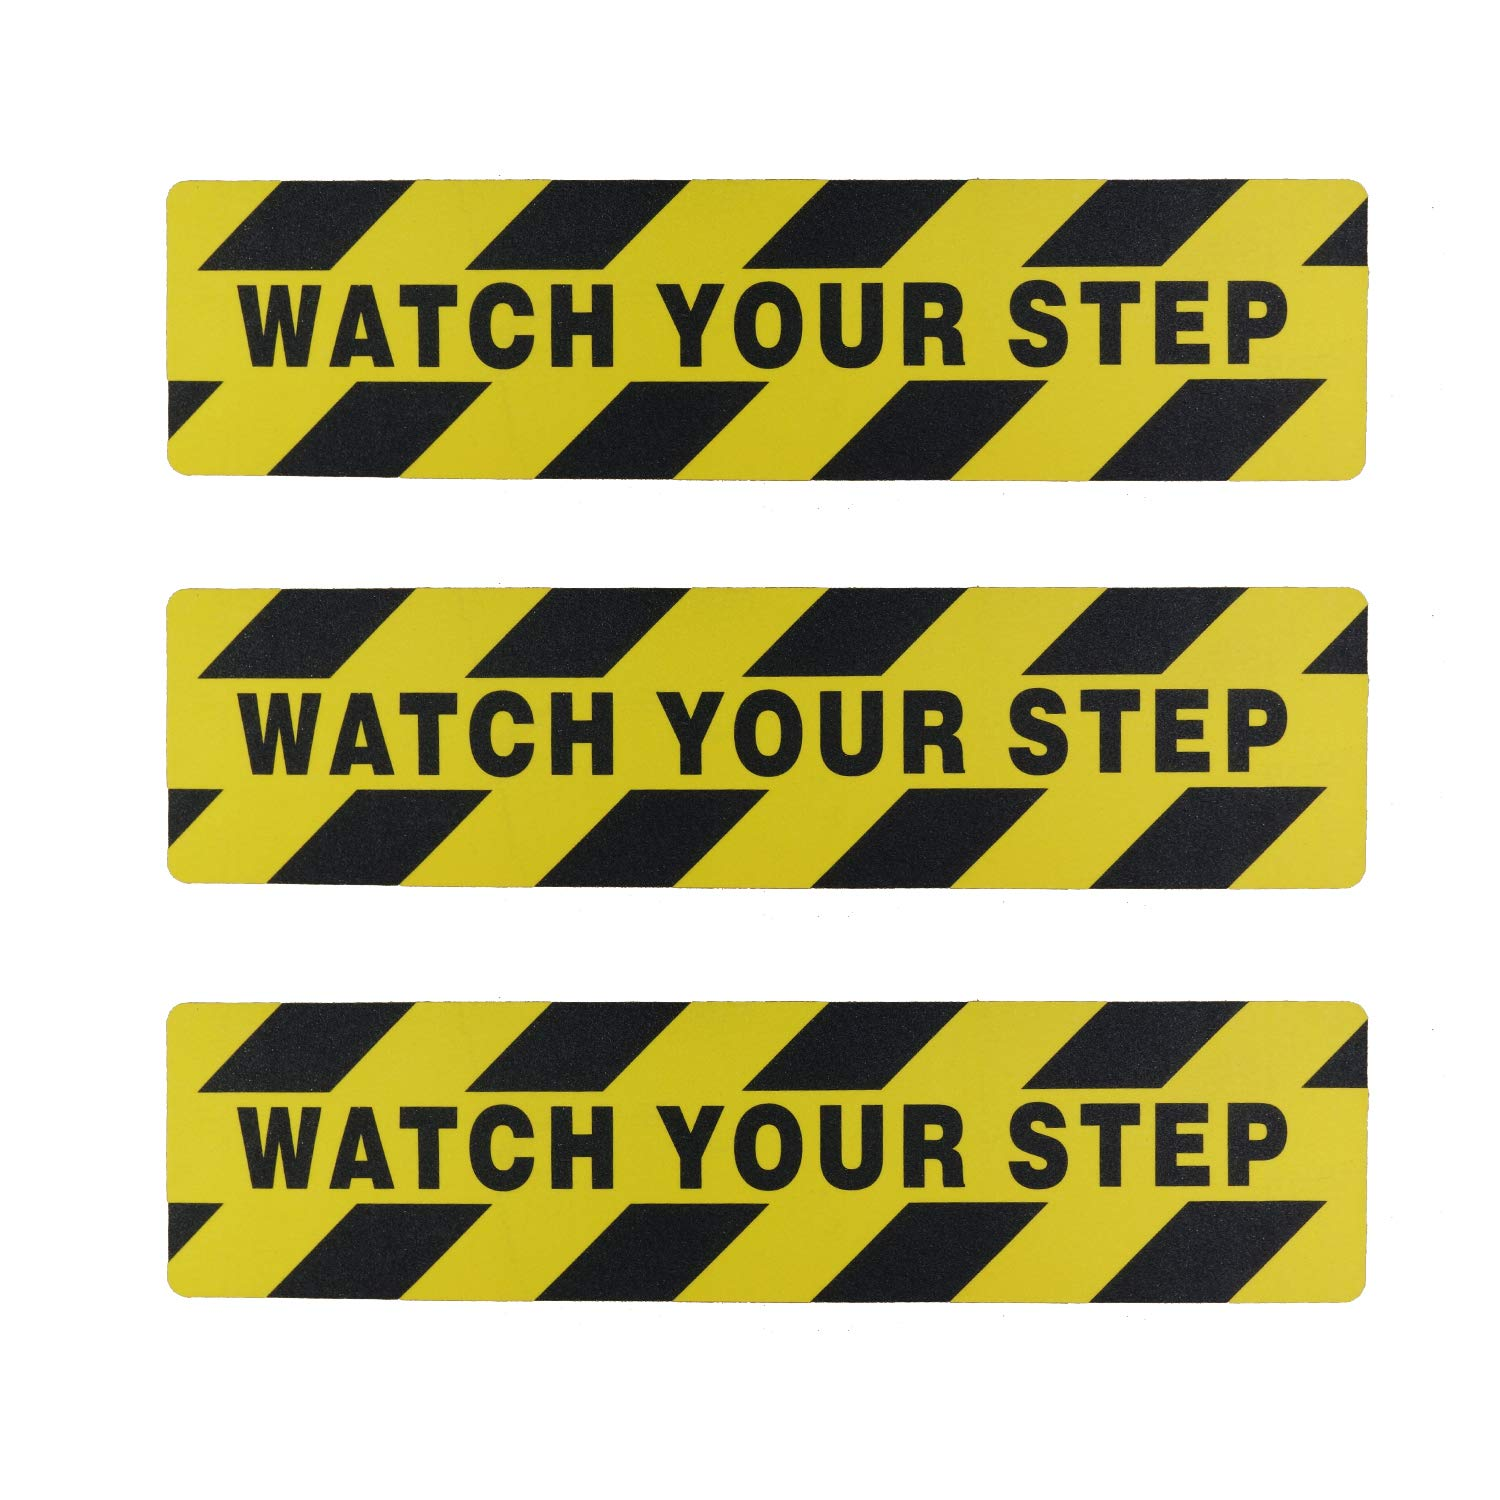 Kasteco 3 Pack Watch Your Step Printed Anti Slip Tape, 6 x 24 Inches